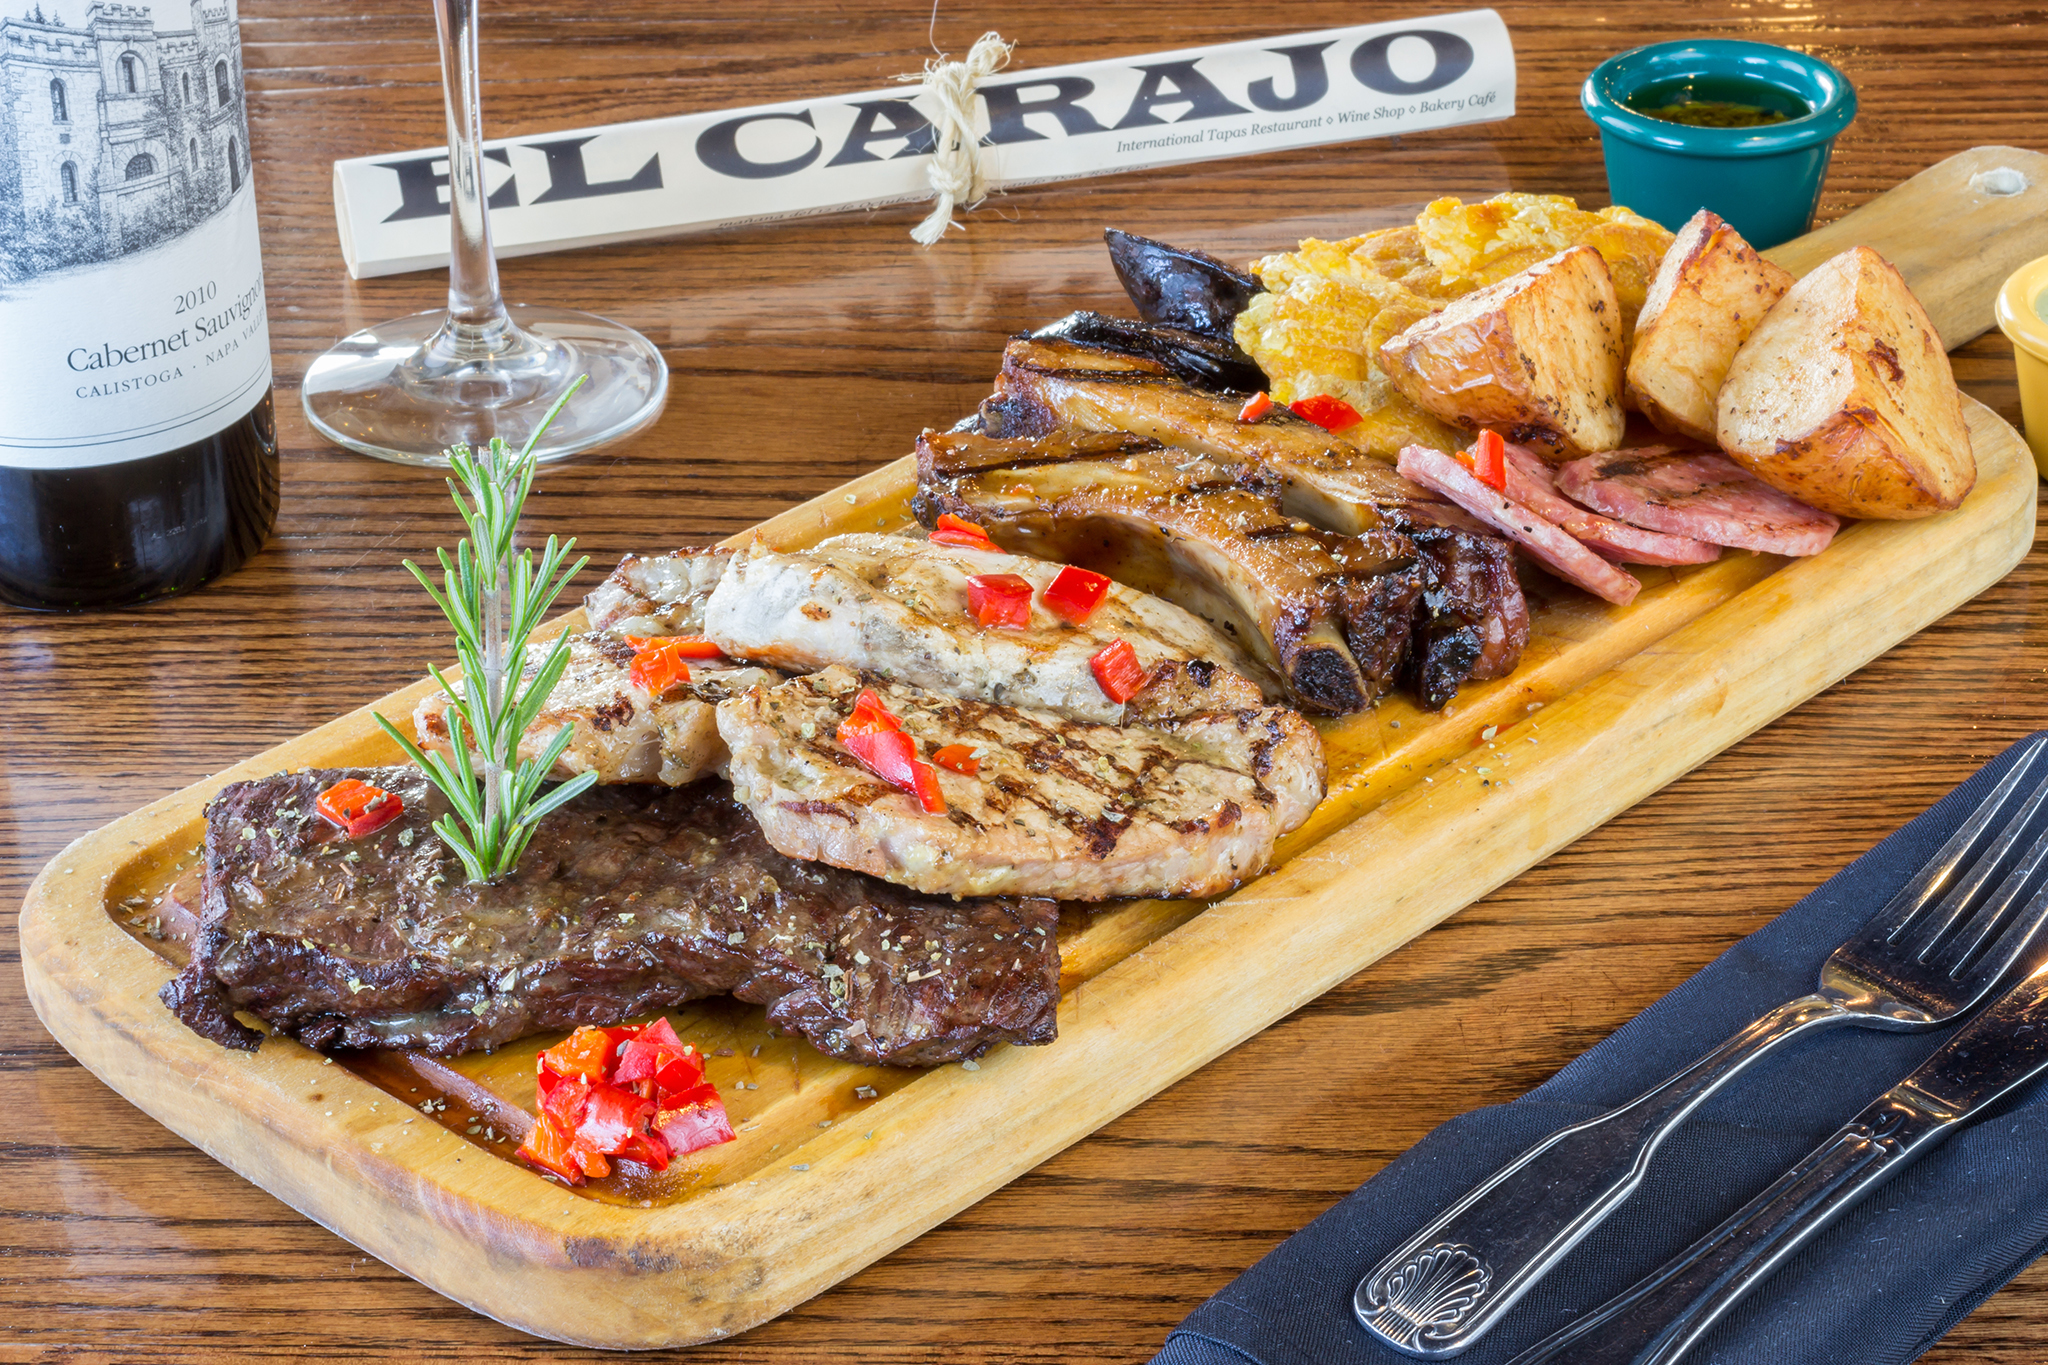 El Carajo International Tapas & Wines